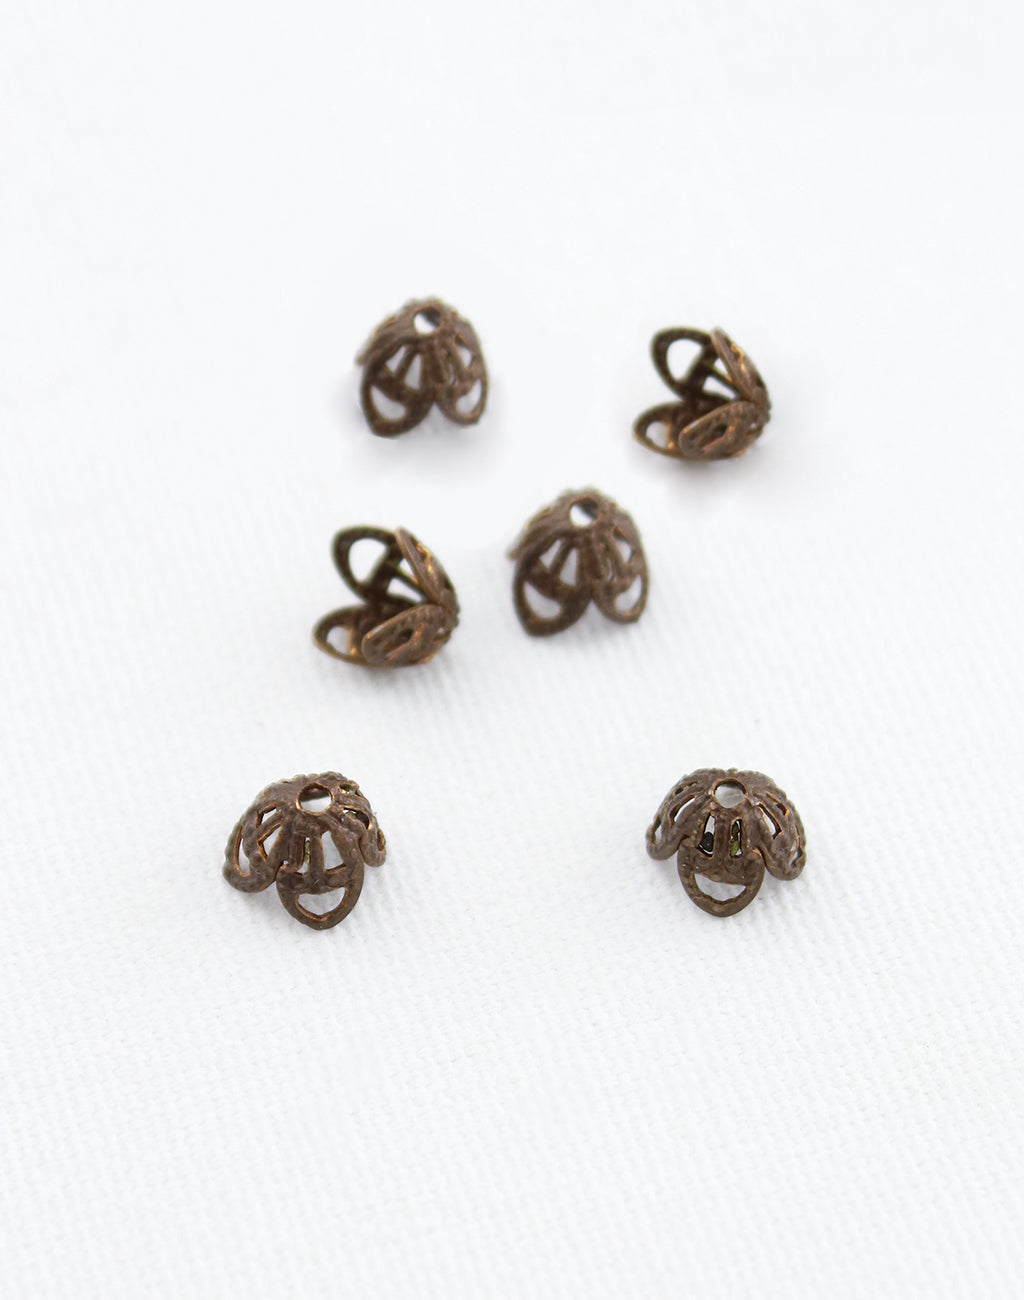 Filigree Bead Cap, 7mm, (4pcs)